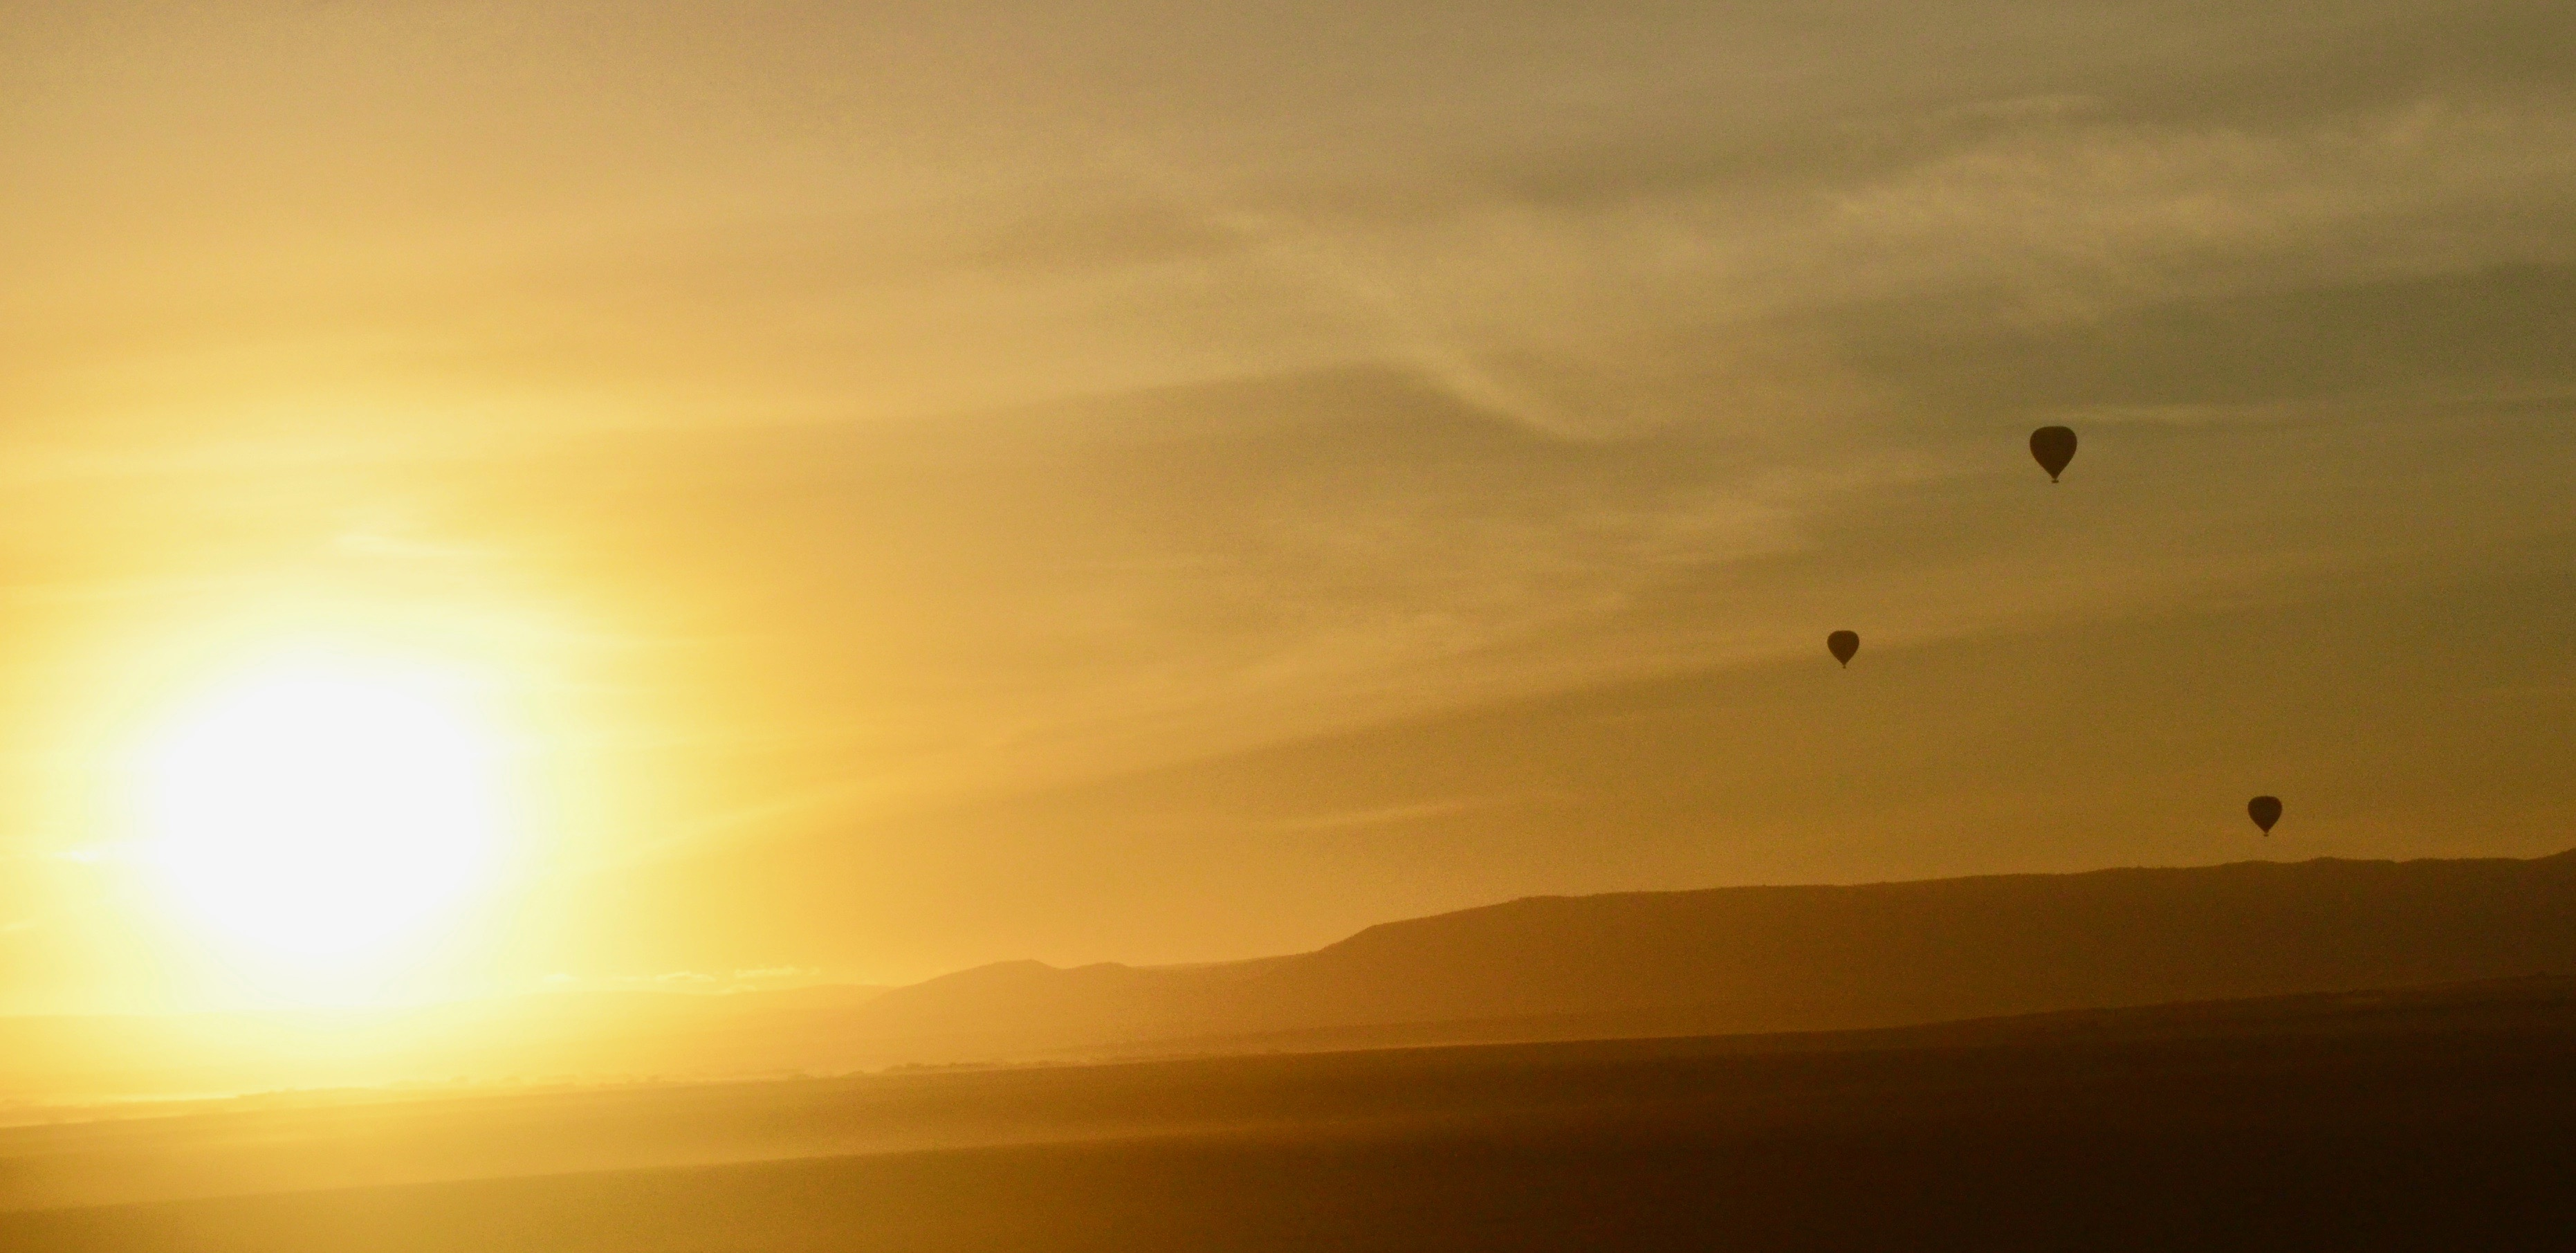 Sunrise with Balloons, Masai Mara